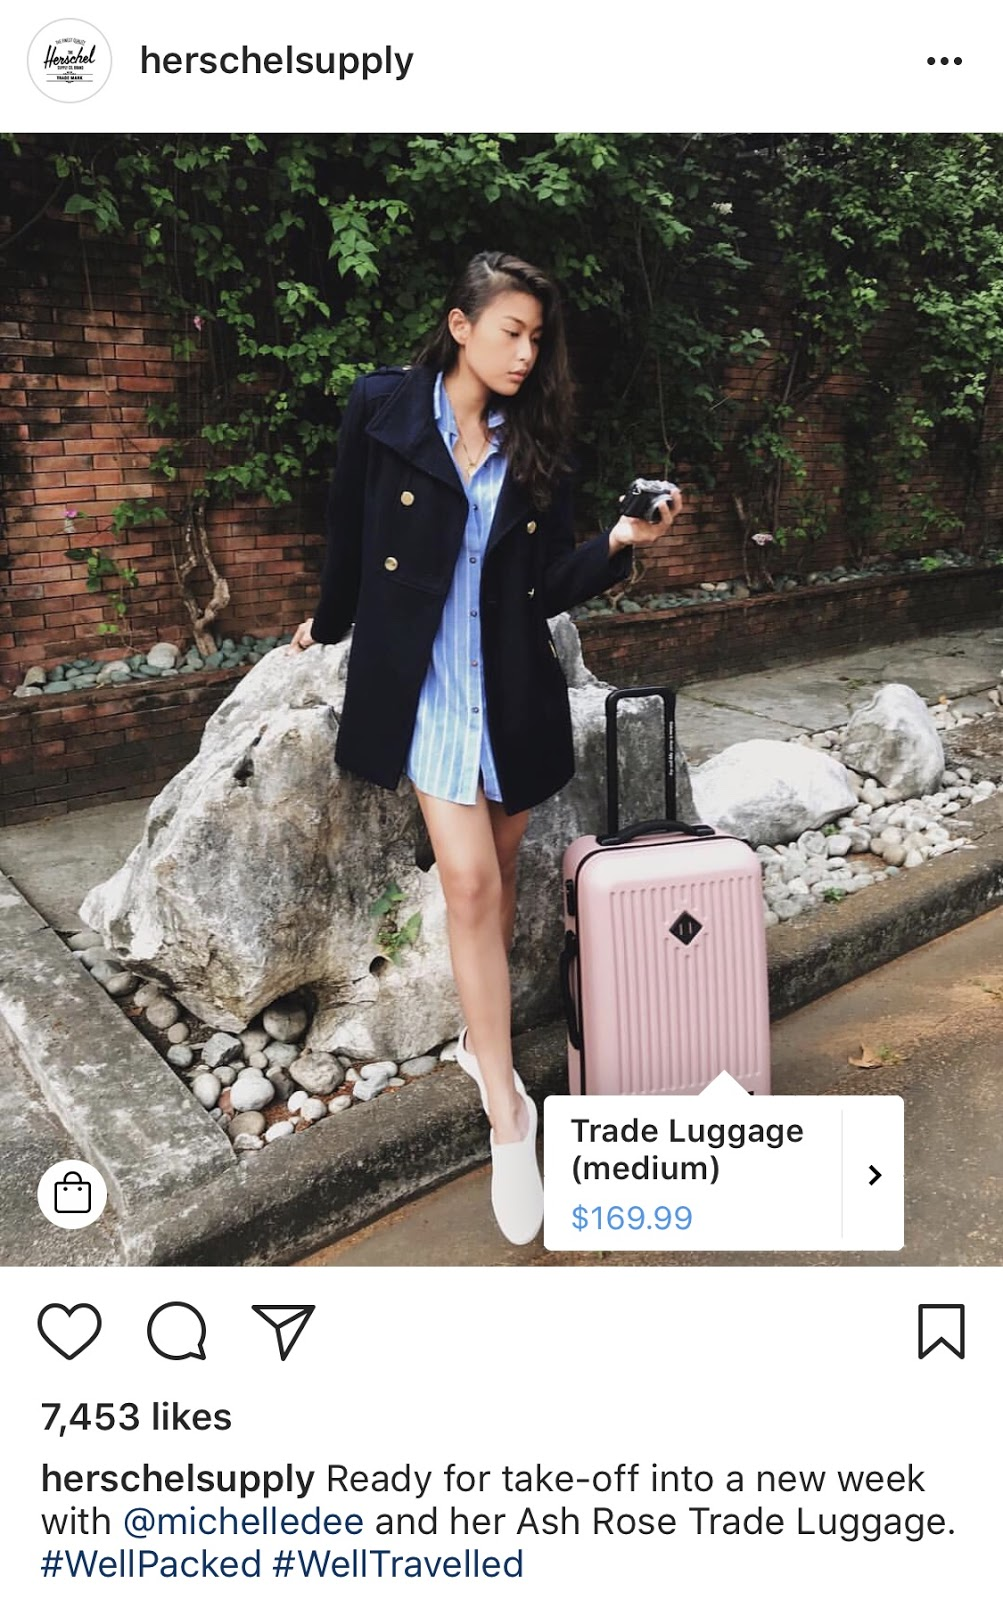 How to Sell on Instagram Using Shoppable Posts 17